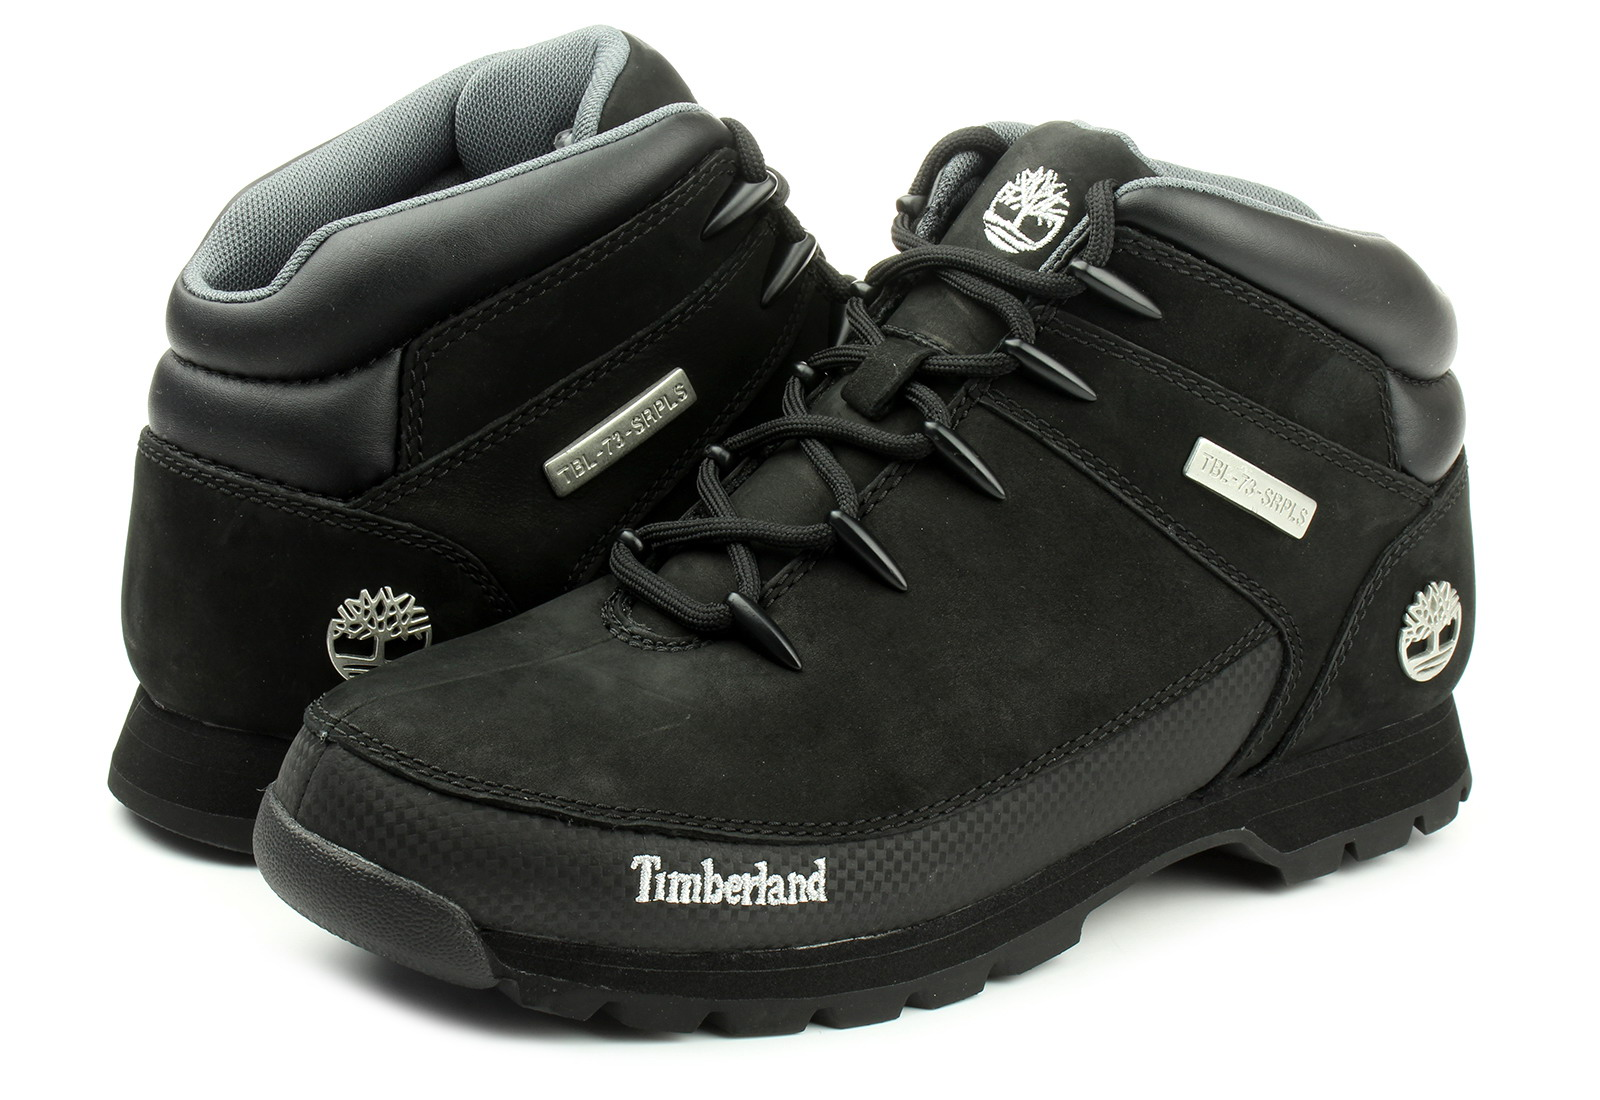 Timberland Topánky - Euro Sprint Hiker - 6361r-blk - Tenisky c0c1c19dc44